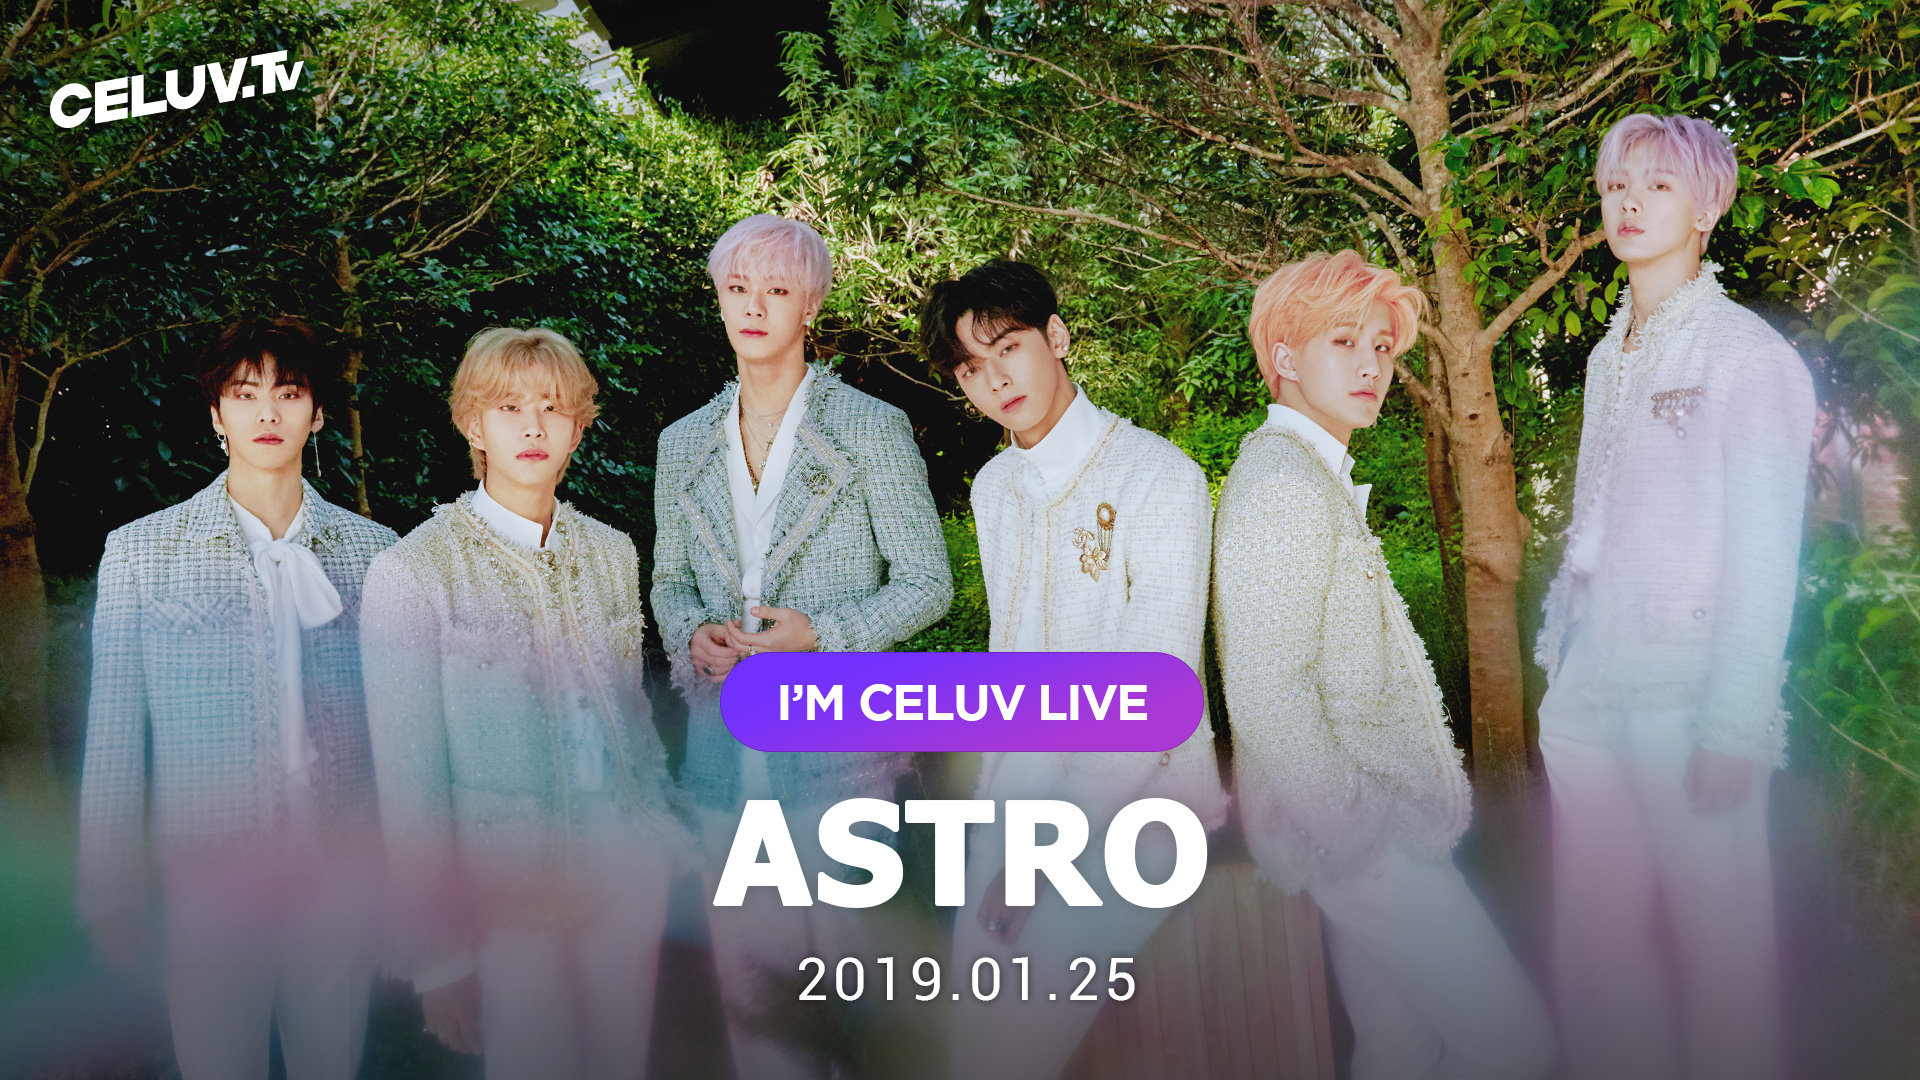 [I'm Celuv] 아스트로(ASTRO), All Light~ All Right! (Celuv.TV)